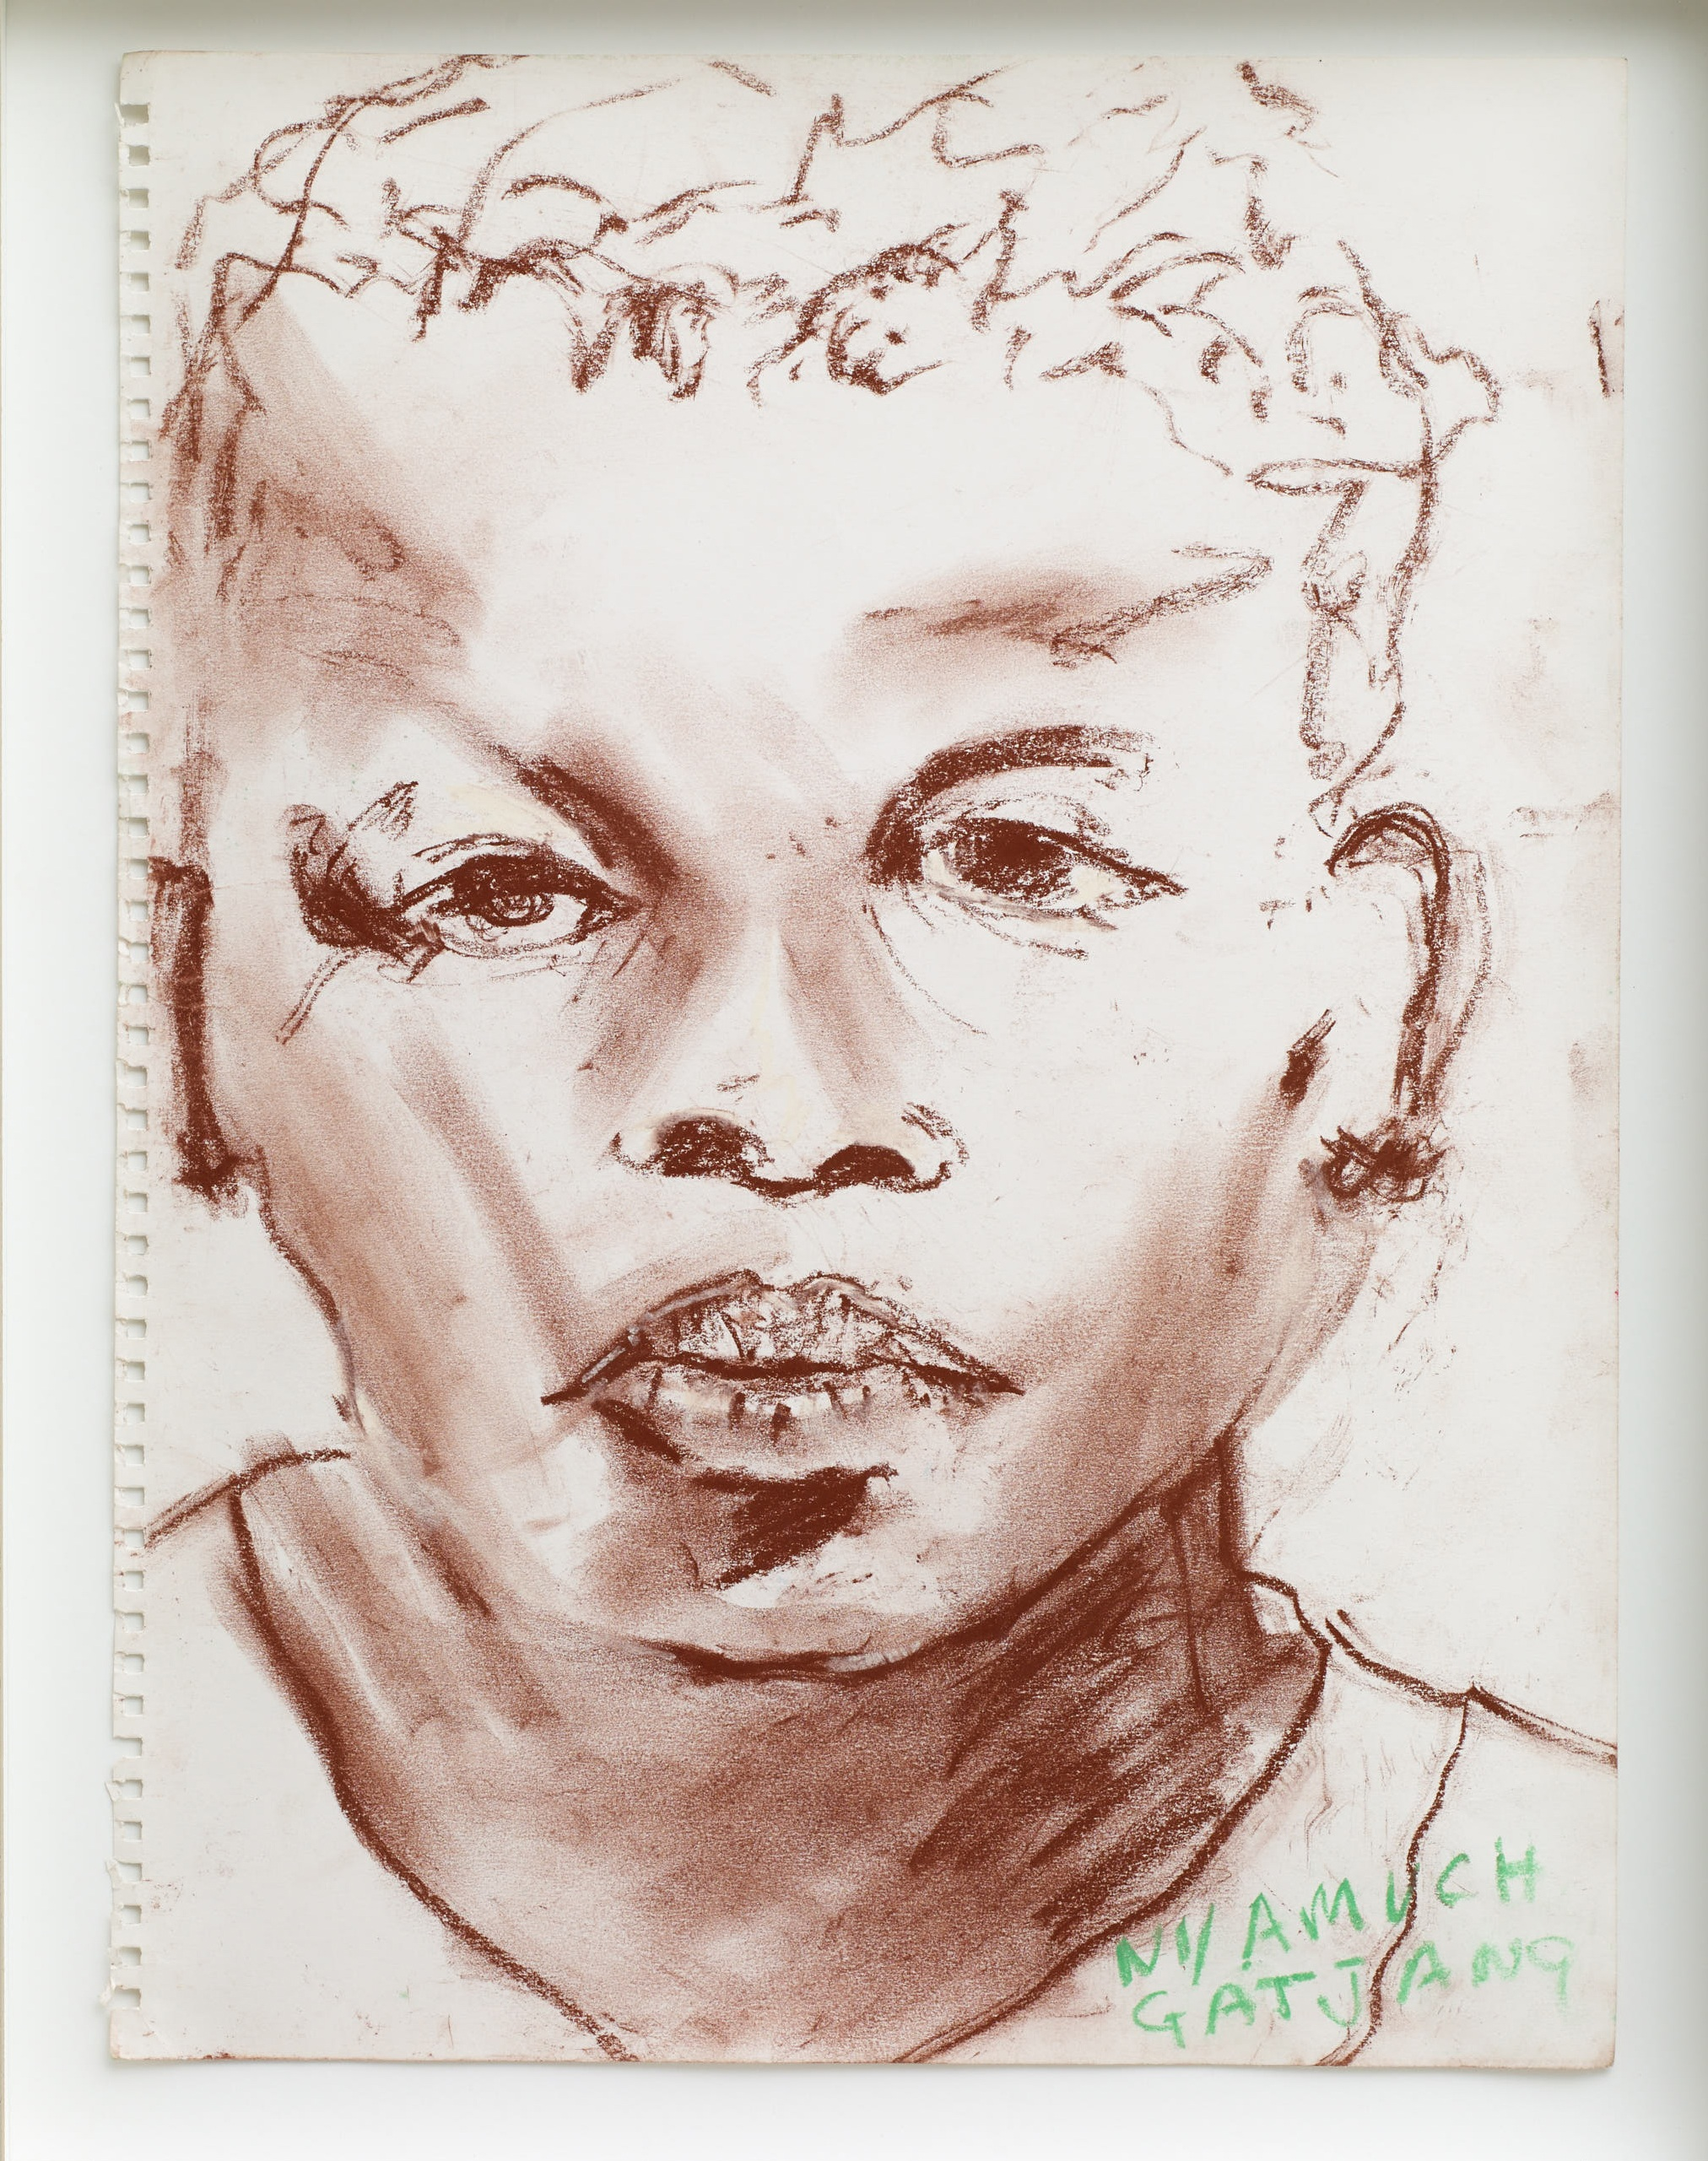 Brian Maguire  Citizens of the Newest Country in the World, Nyamuch Gatjang , 2018 Chalk on paper 40 x 30 cm